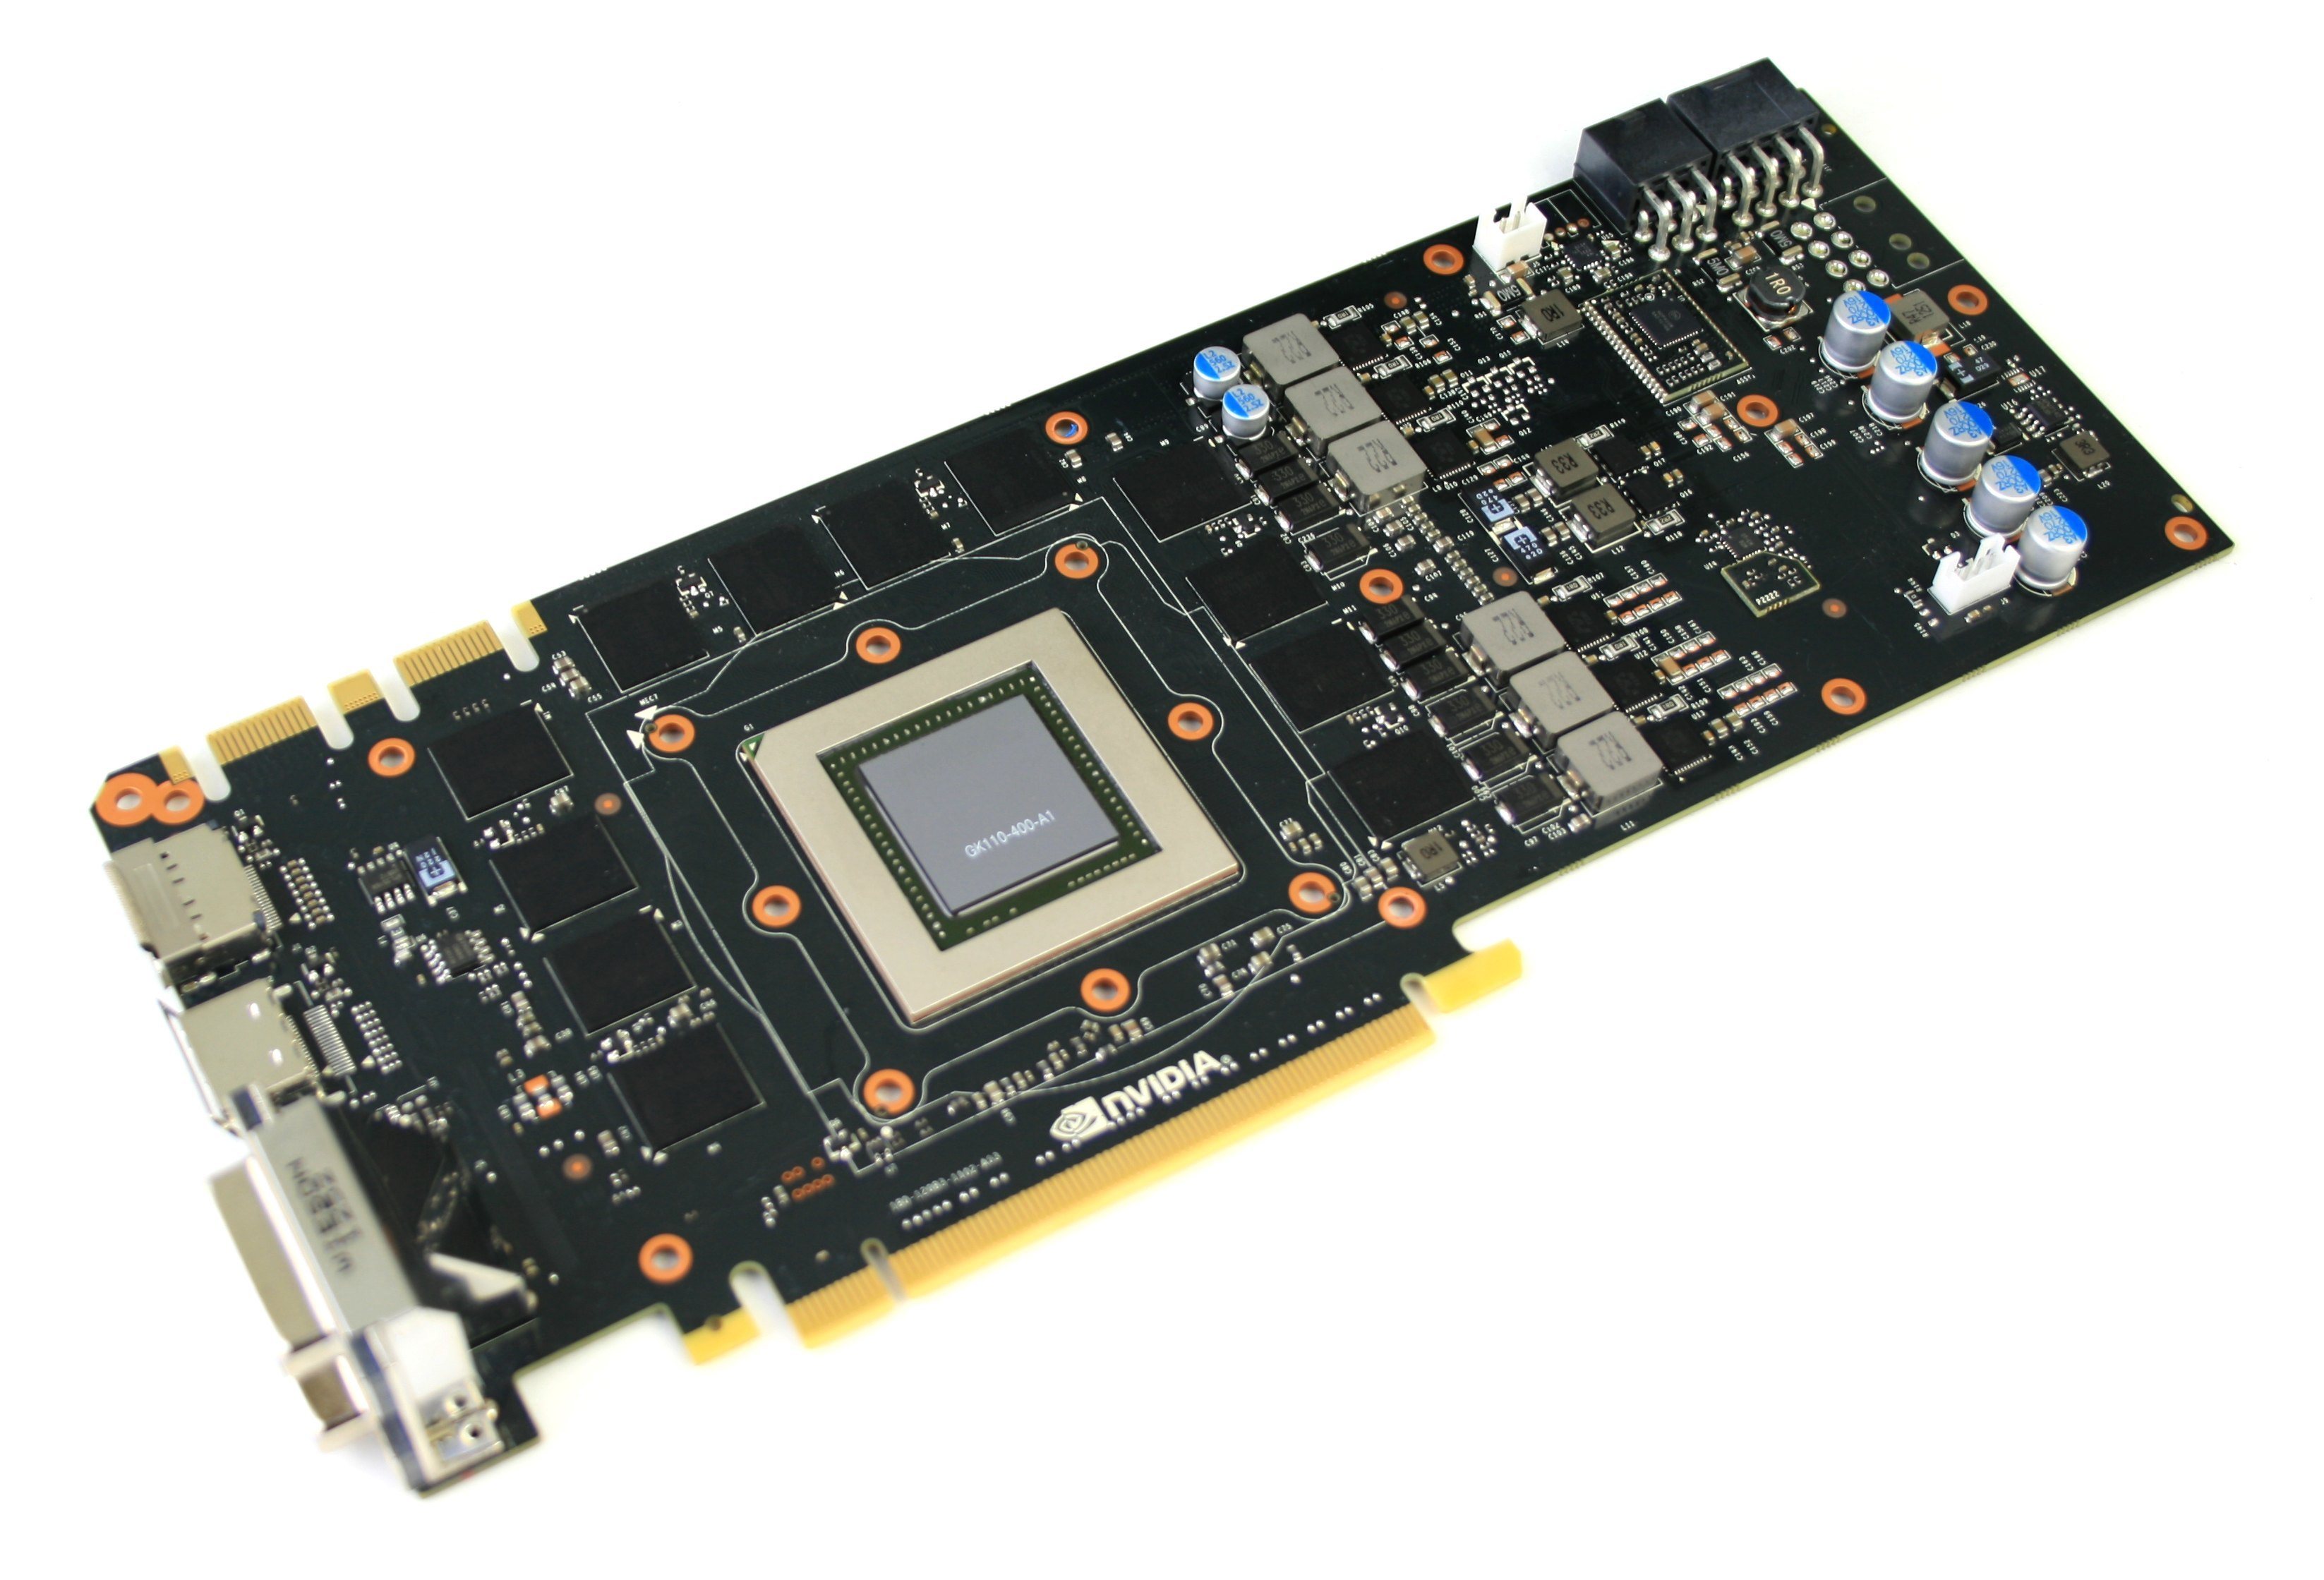 NVIDIA Geforce GTX Titan 6GB bare card